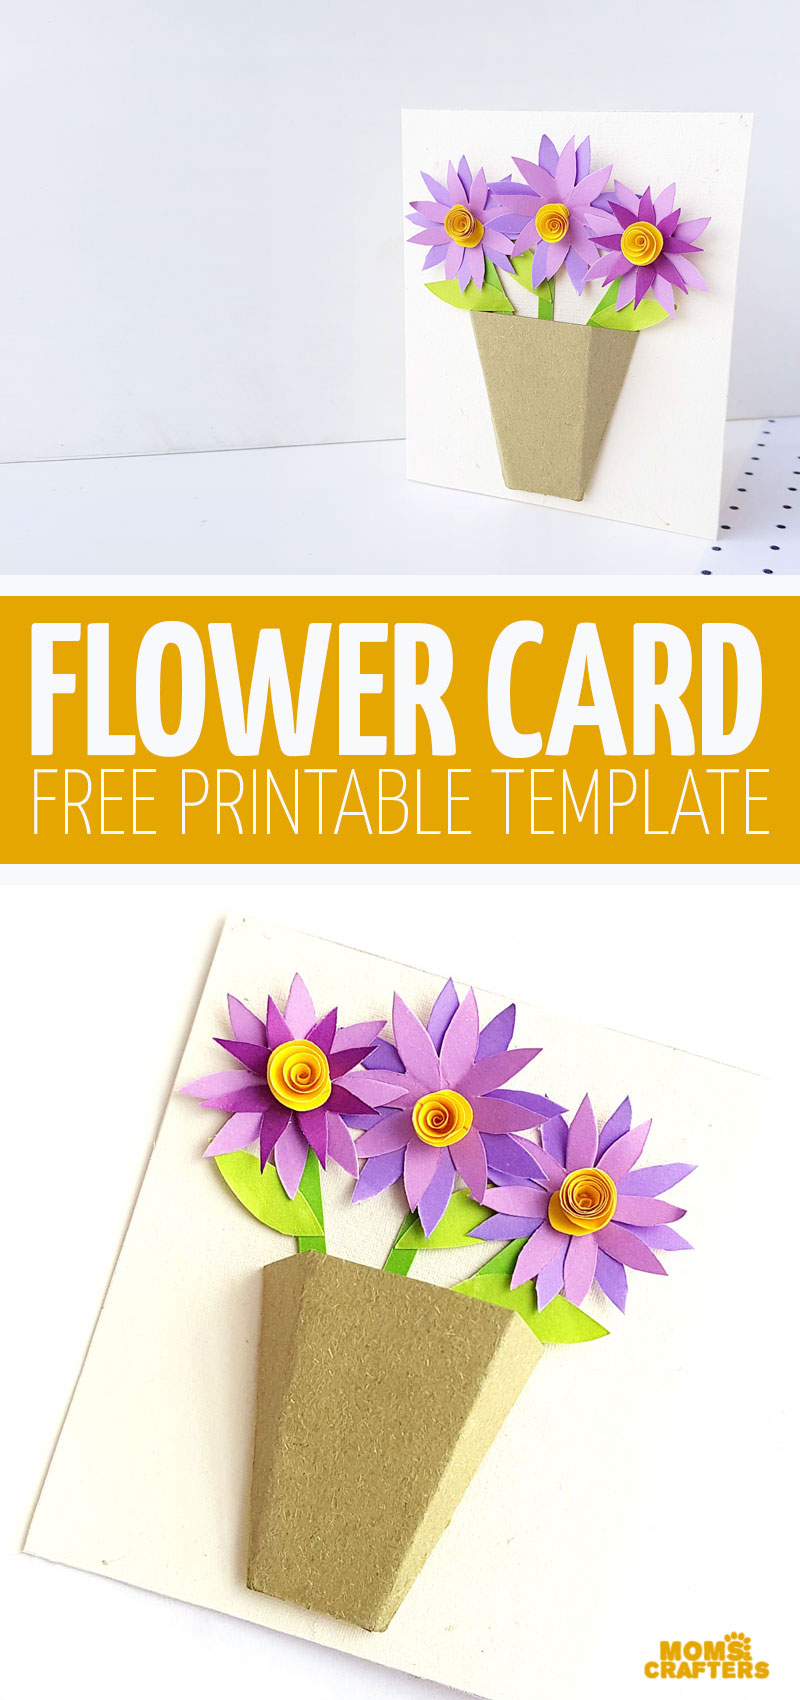 Learn how to make a 3D flower bouquet card with this free printable paper craft template! This is fun for Mother's Day, or do it in poinsettia colors for Christmas.